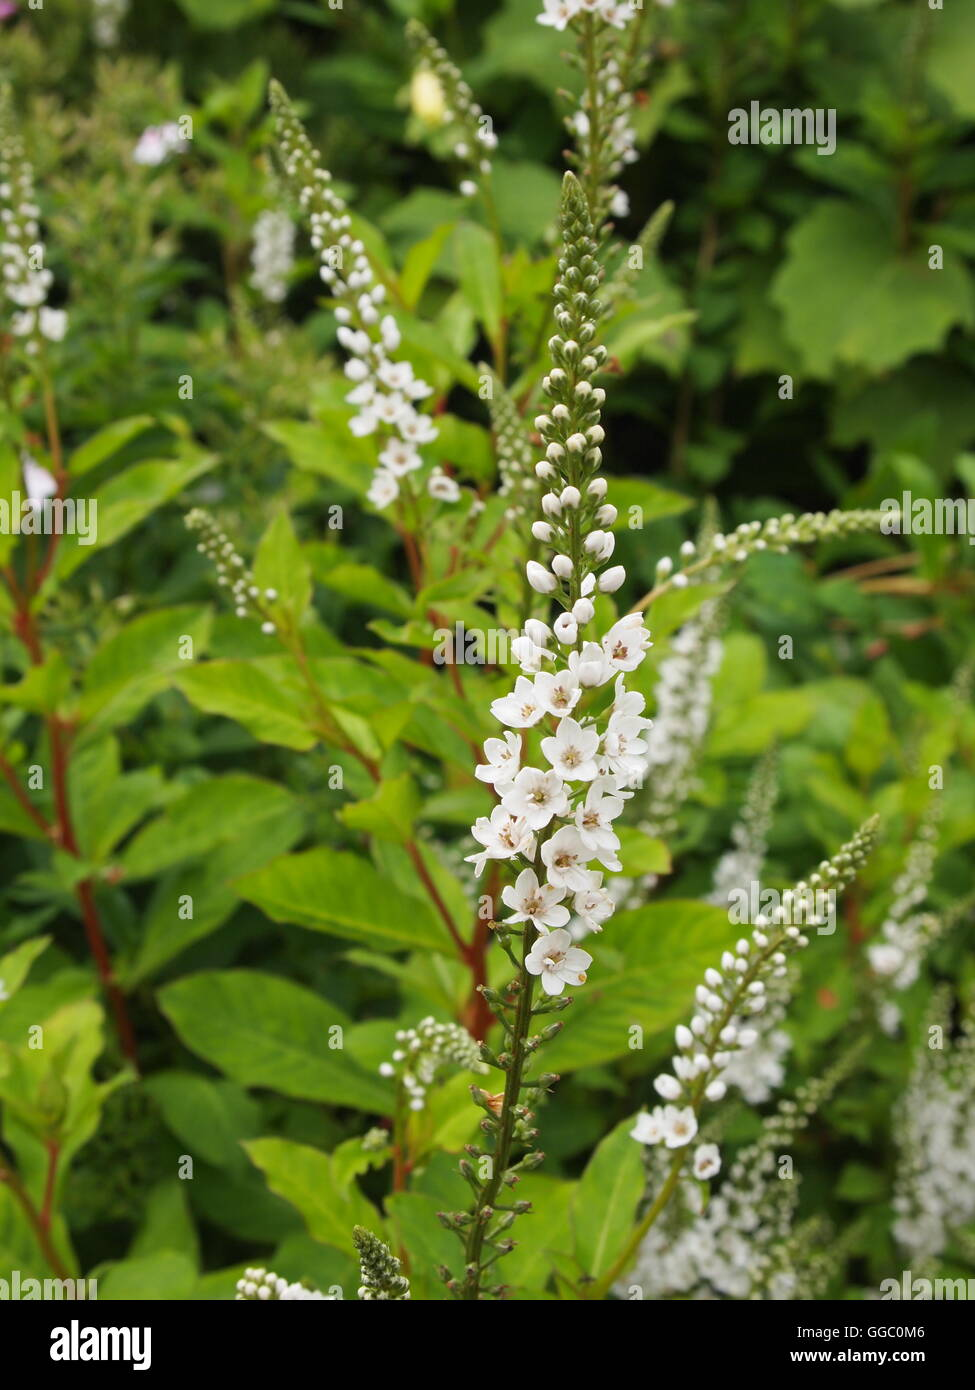 PRIMULACEAE - LYSIMACHIA 'CANDELA' white small flowers throngs with green leaves - Stock Image